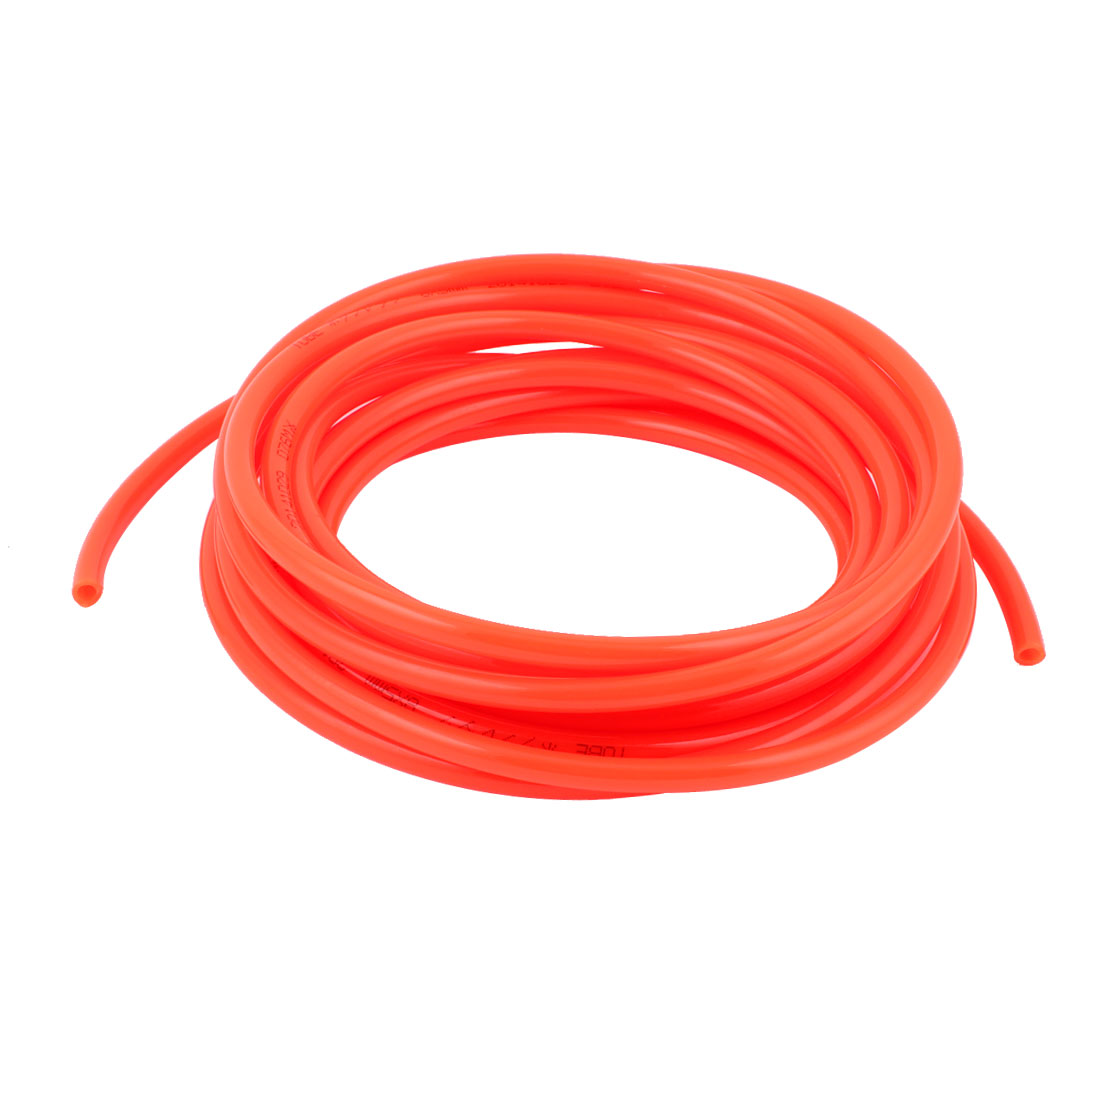 8mm OD 5mm ID Fuel Gas Air Polyurethane PU Tubing Hose Pipe 6M 20Ft Red